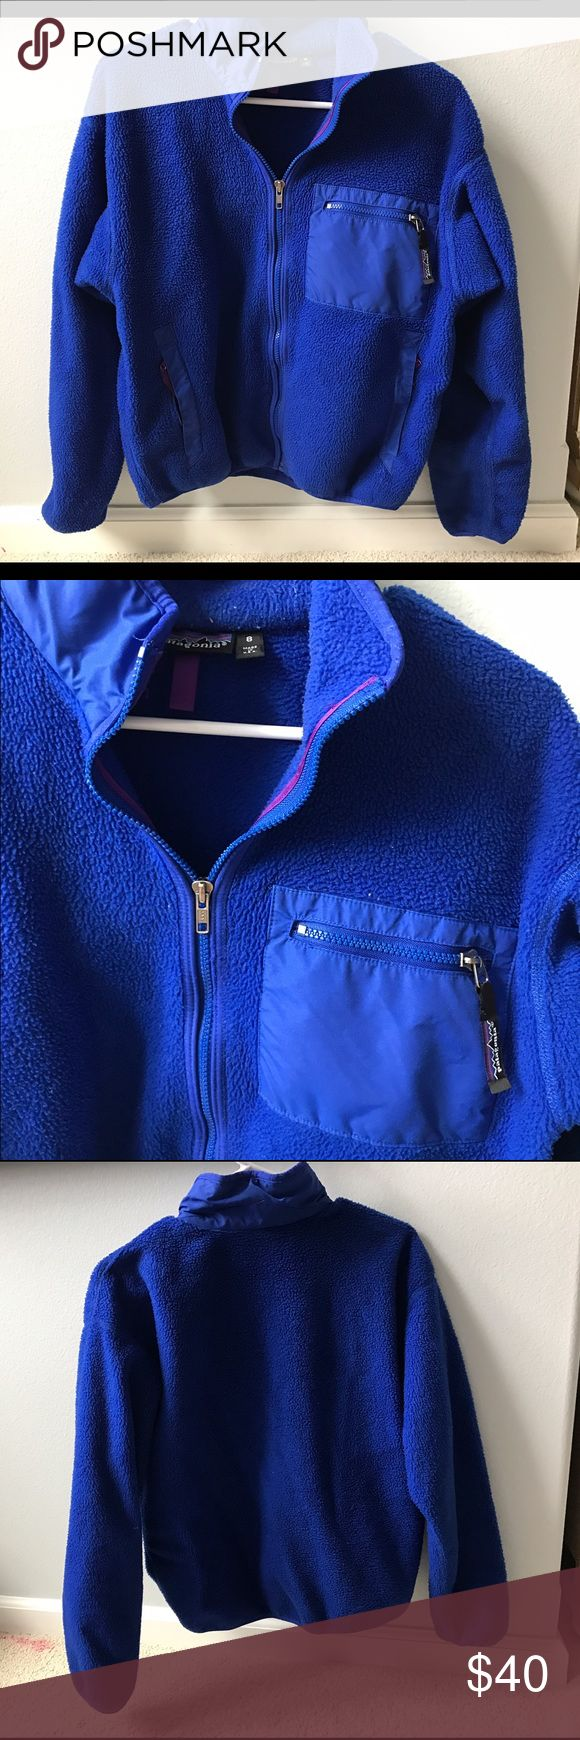 Patagonia Vintage zip up authentic Women's Royal Blue patagonia zip up • says size 8, fits like and XS or S• bought at Urban Outfitters in NY• all zippers attached and in good condition• VINTAGE Patagonia Jackets & Coats Utility Jackets